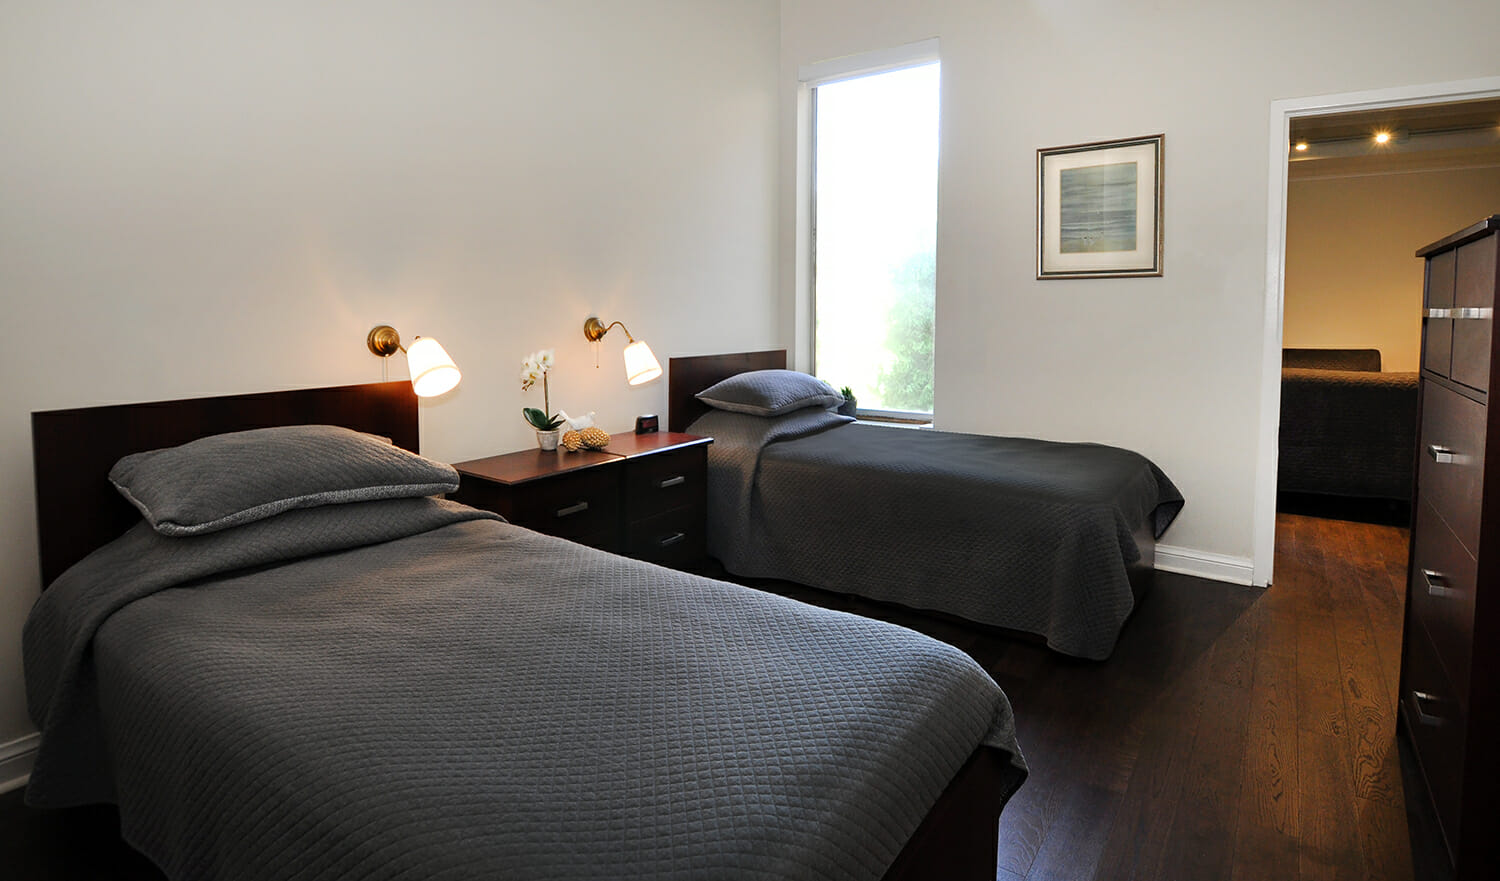 Two beds with grey bedding in Munro Centre bedroom.